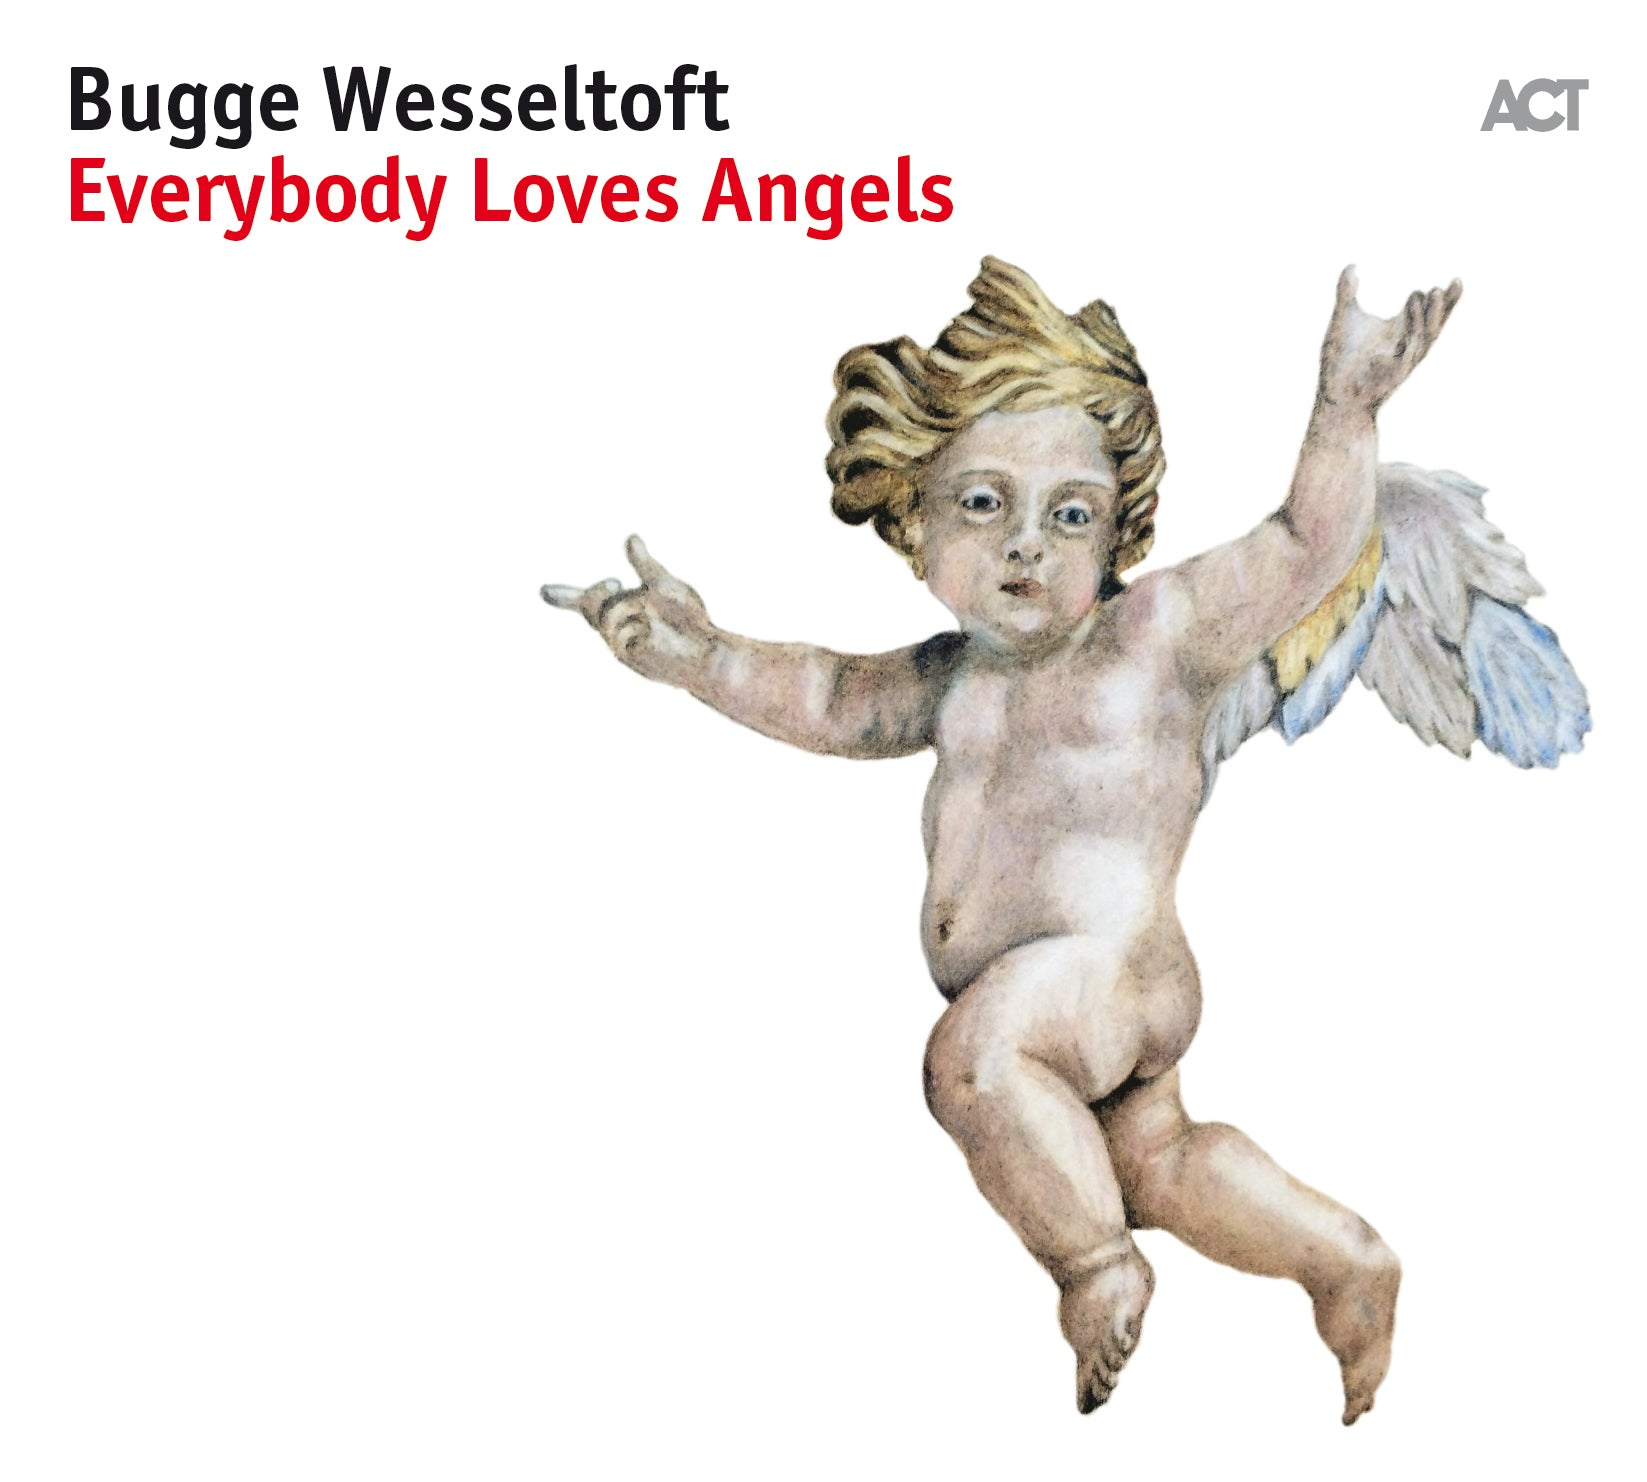 Bugge Wesseltoft - Everybody Loves Angels (ACT)